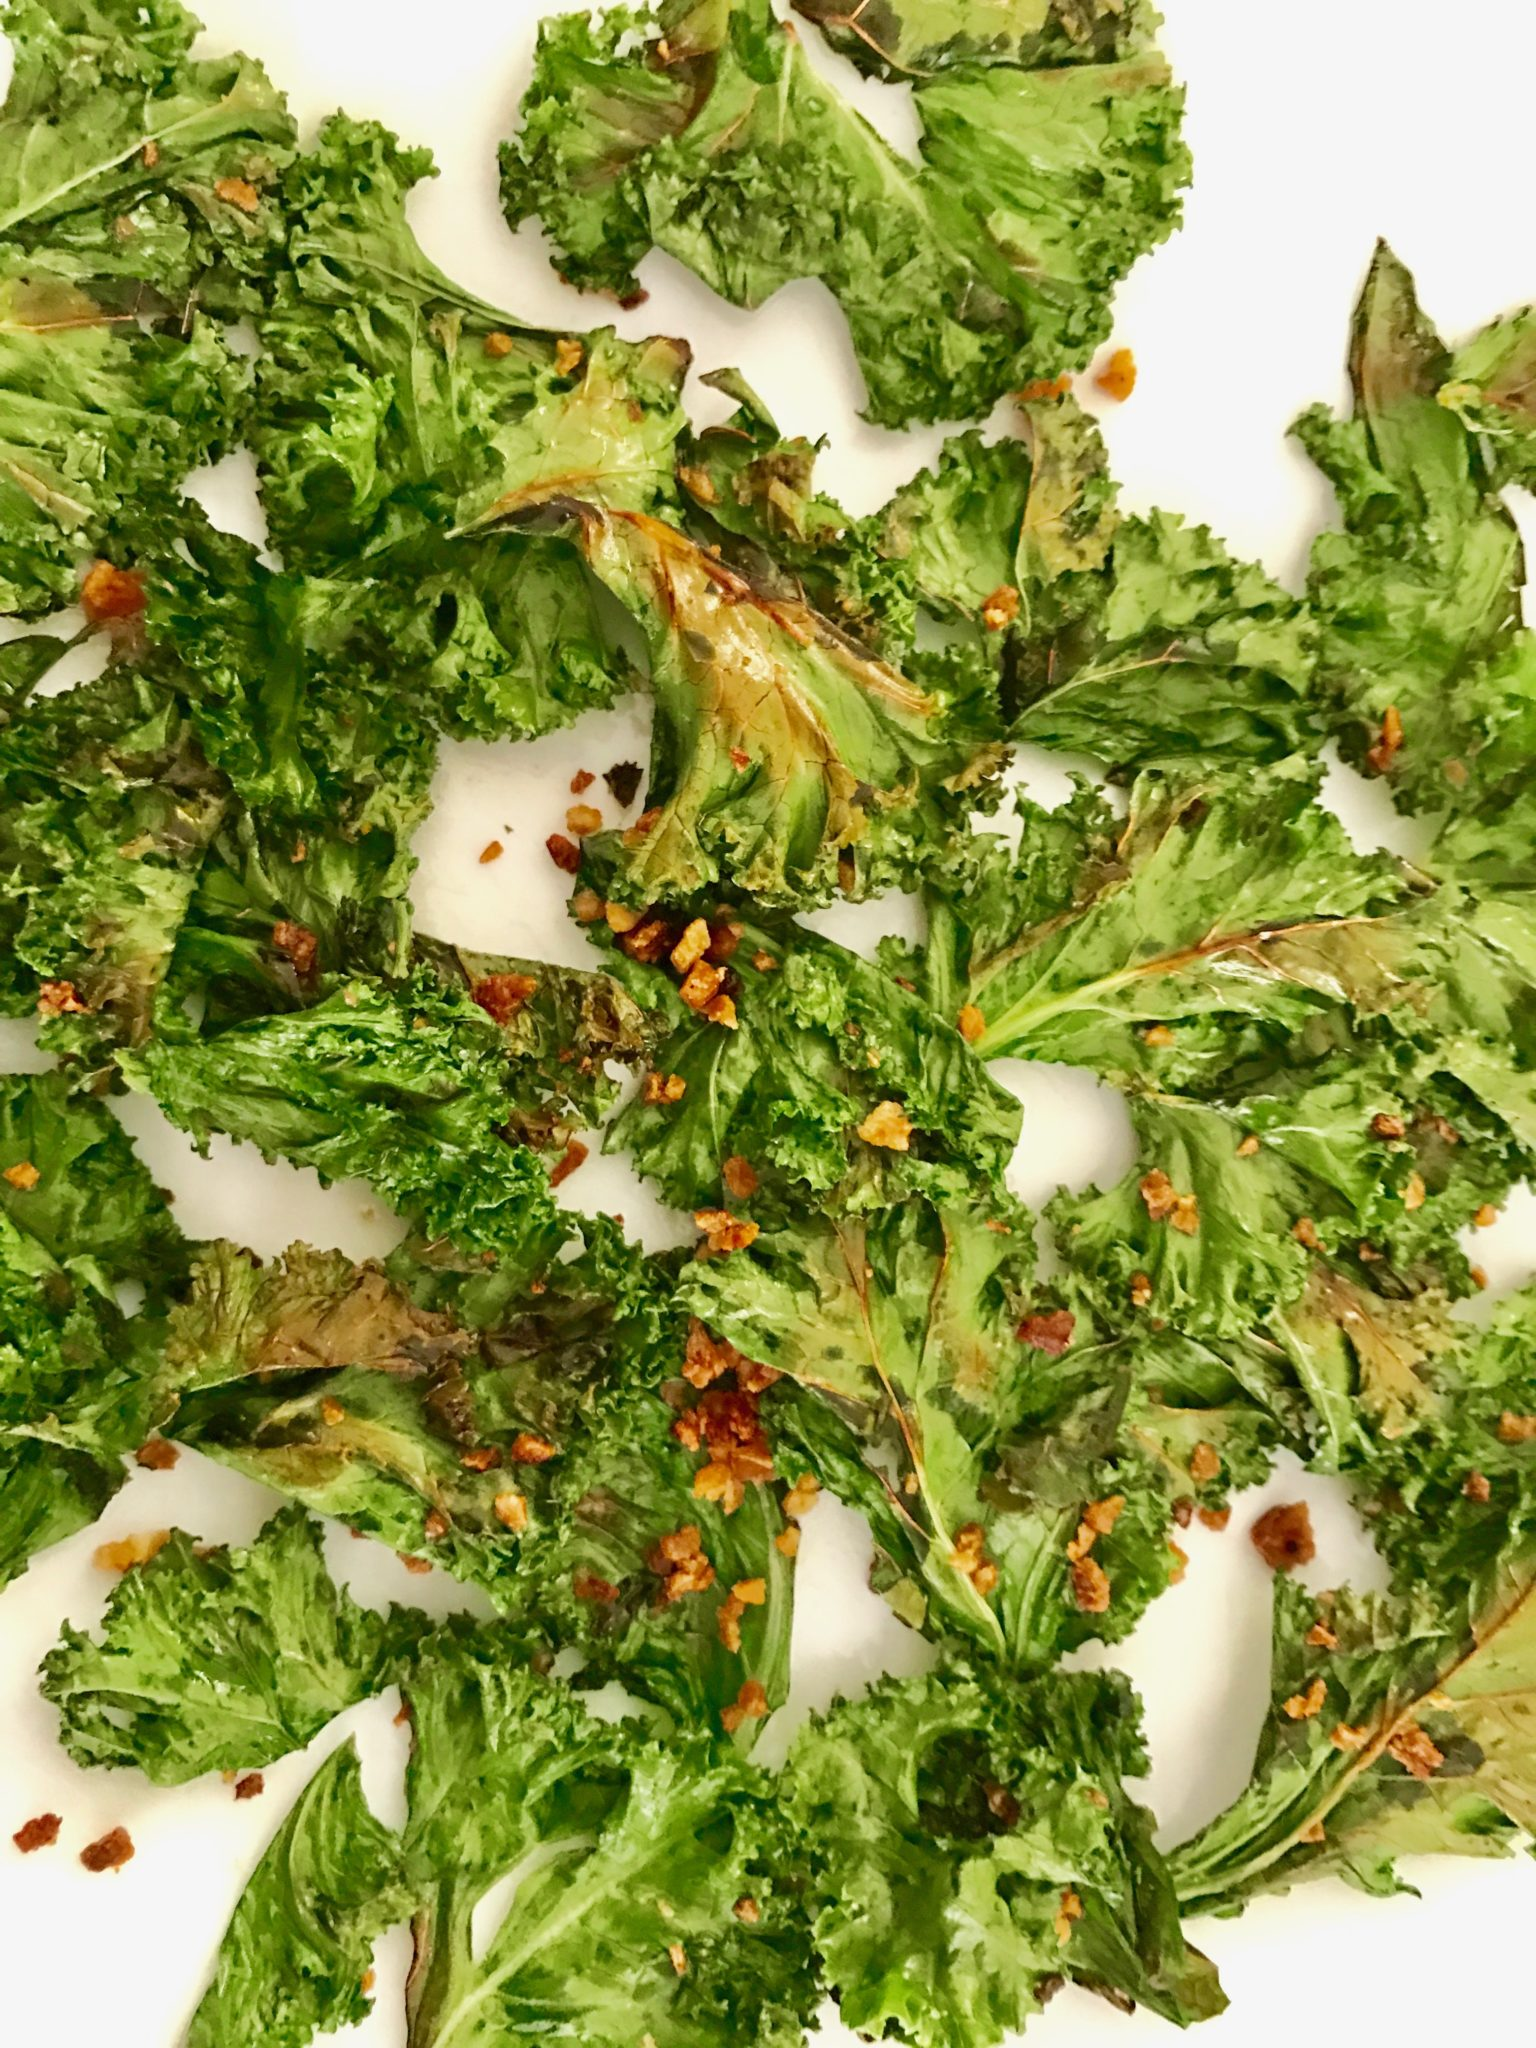 kale chips are being cooled on a plate